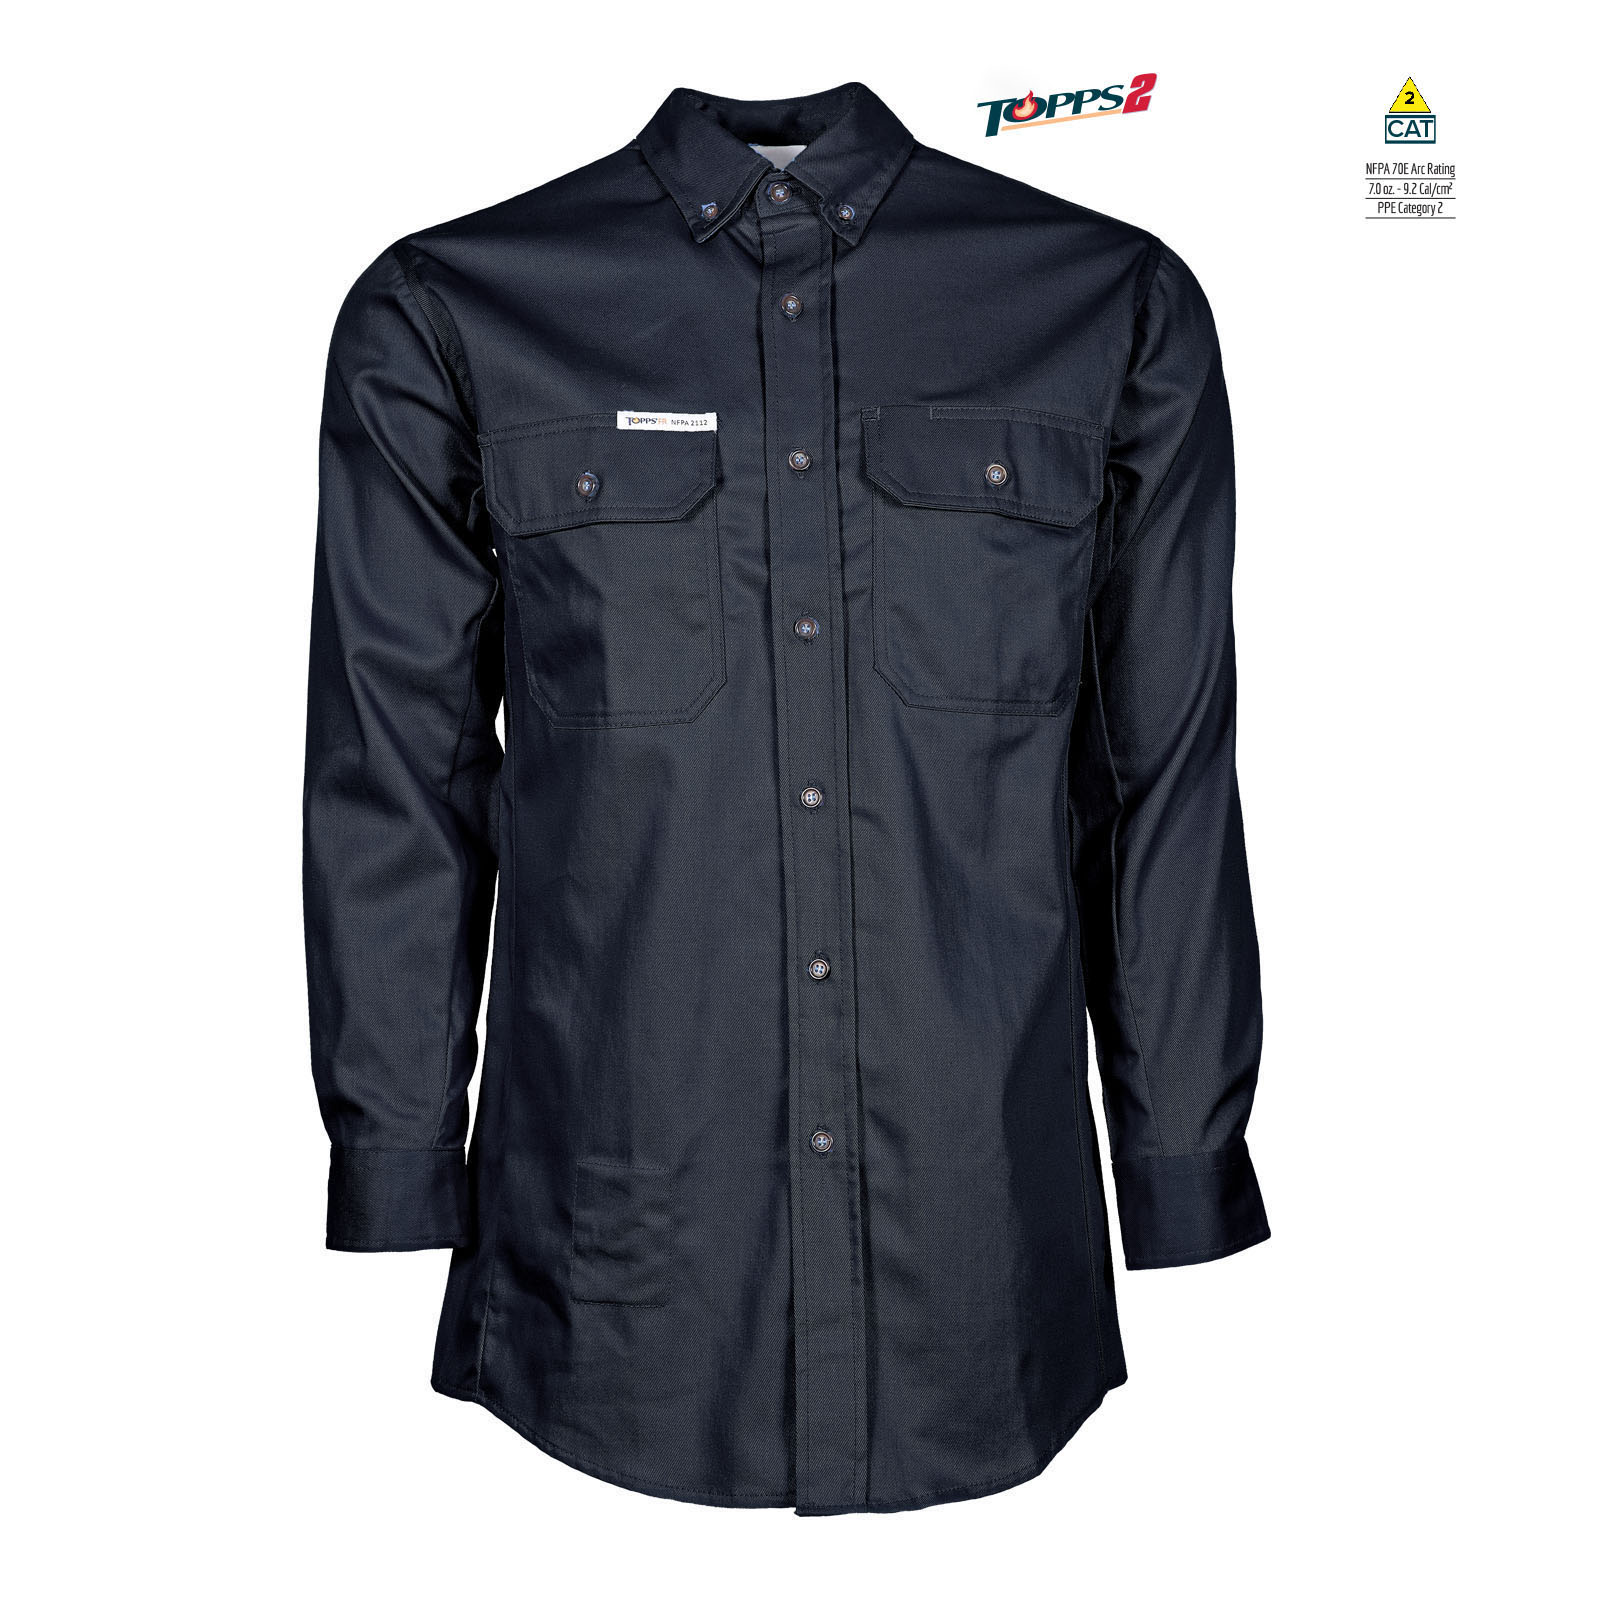 88/12 Cotton/Nylon Blend Long Sleeve Flame Resistant Button-Front Shirt-